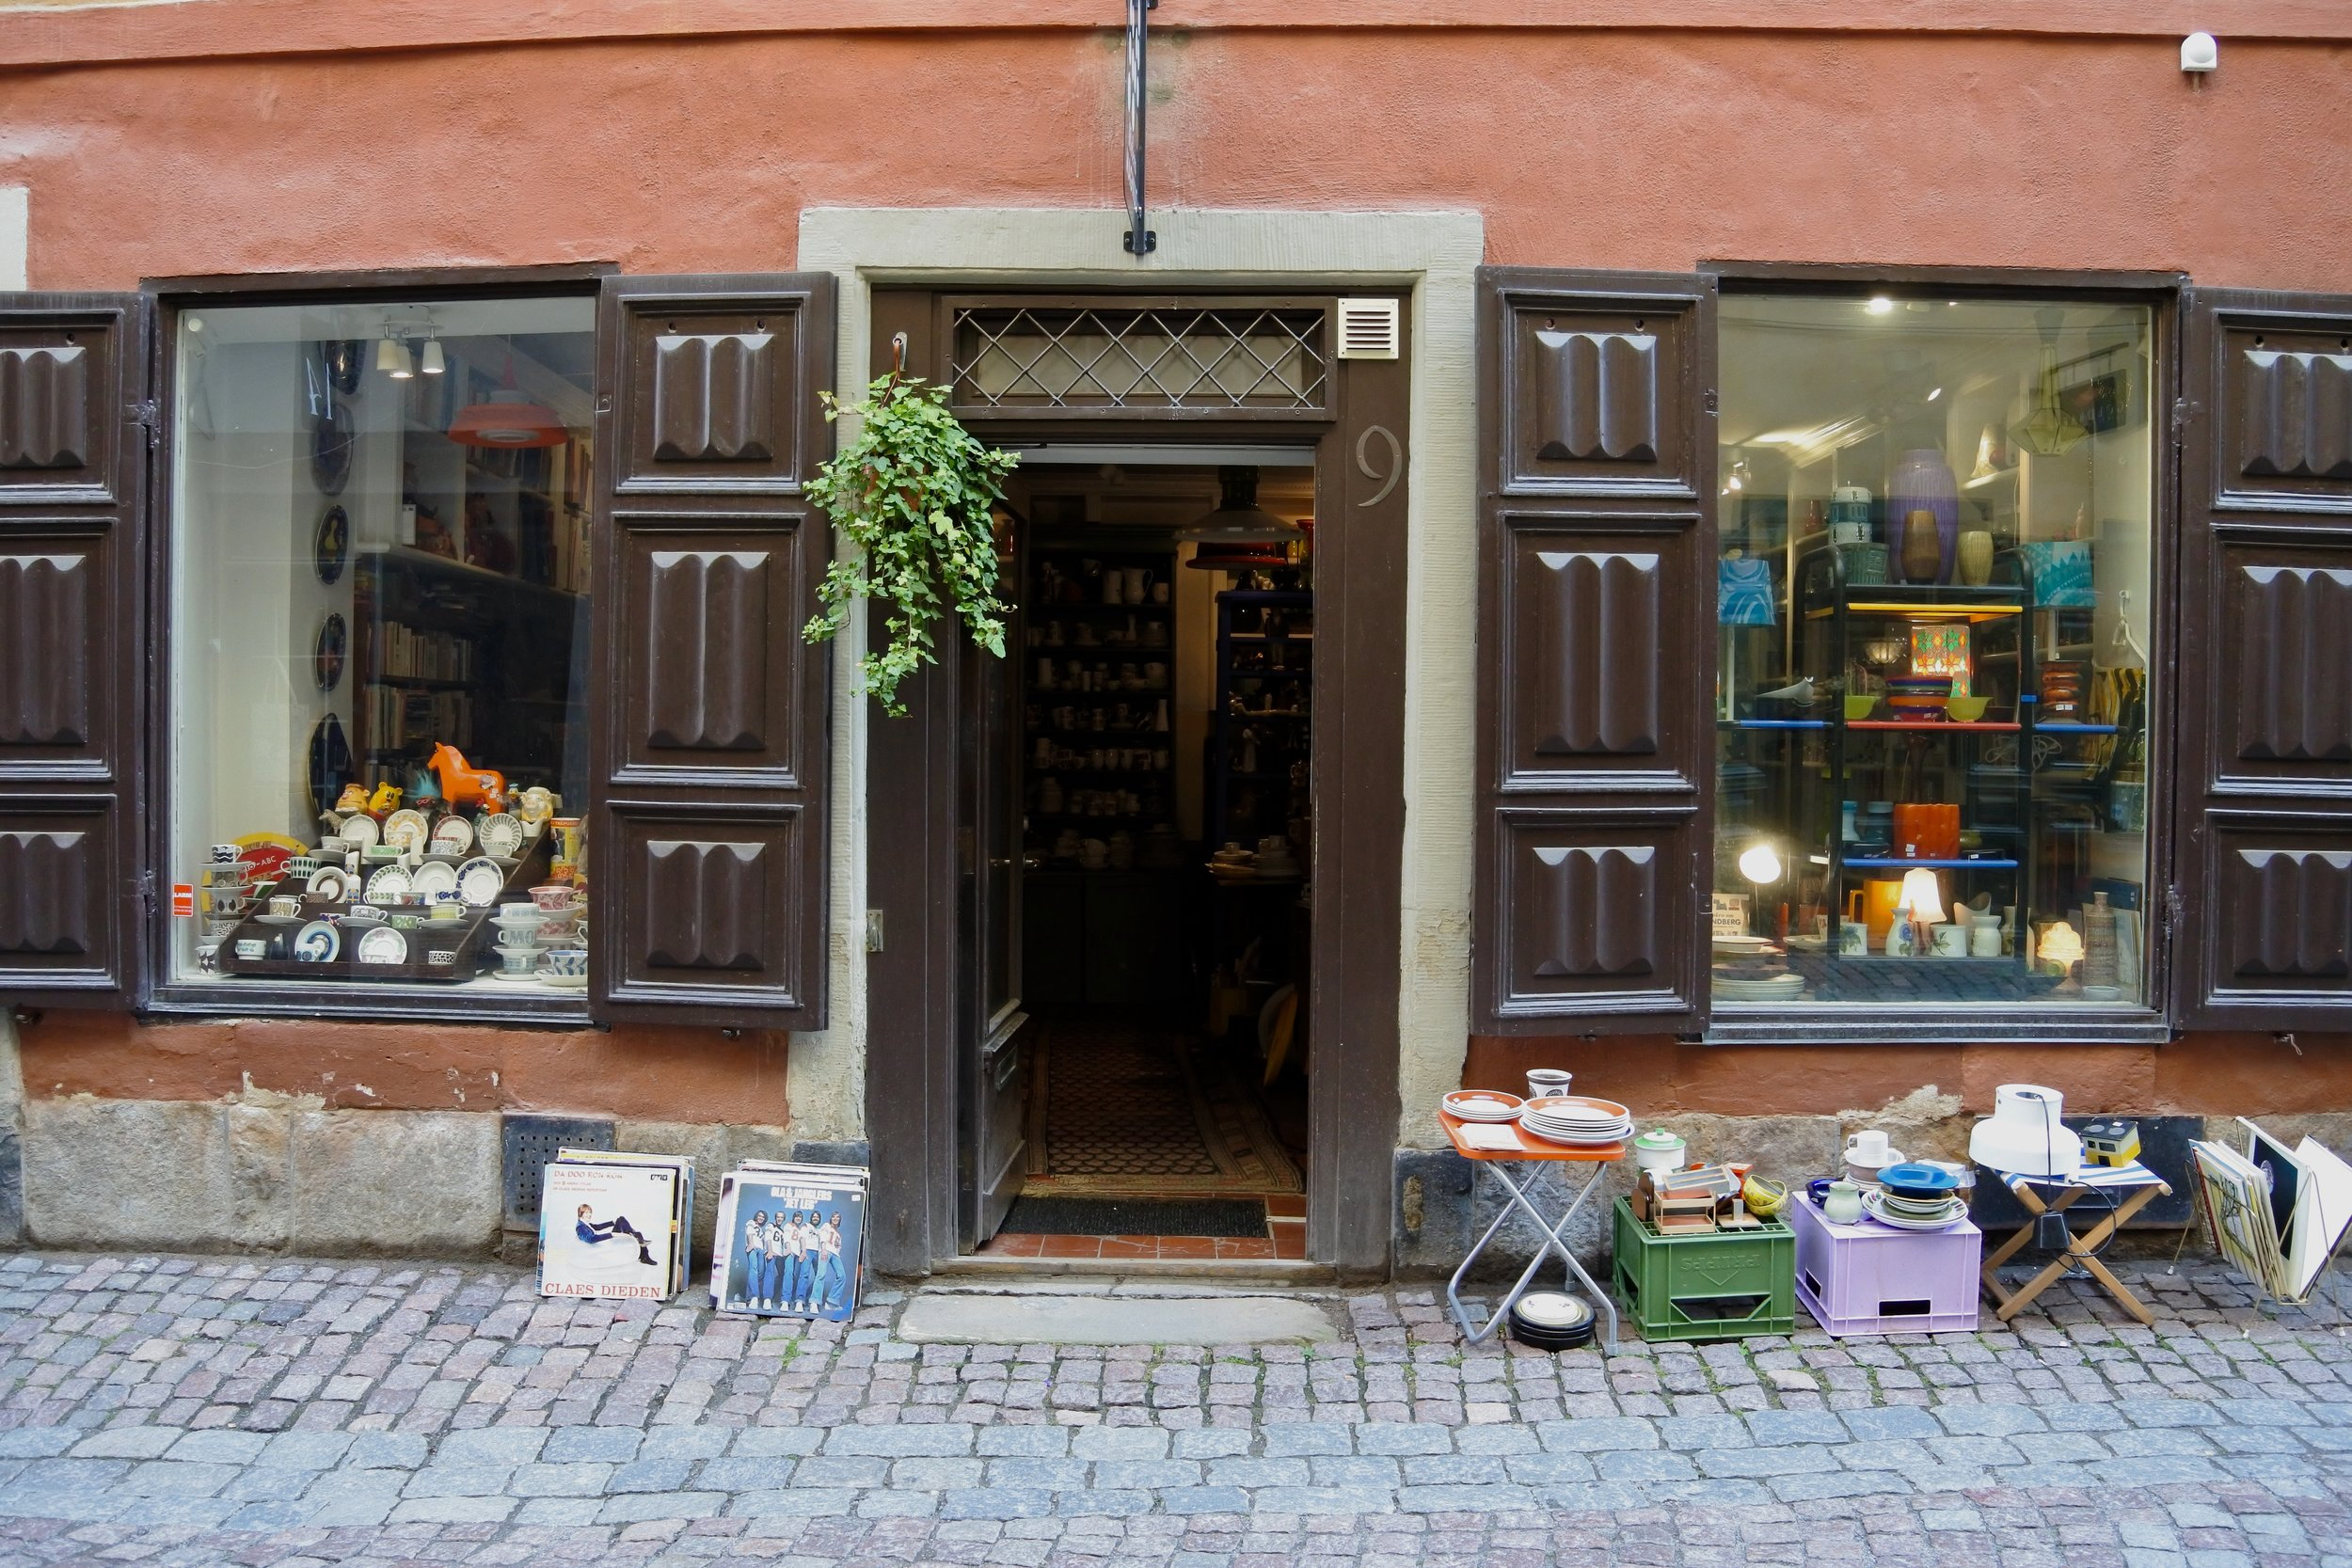 One of many antique shops in Gamla Stan (old town).